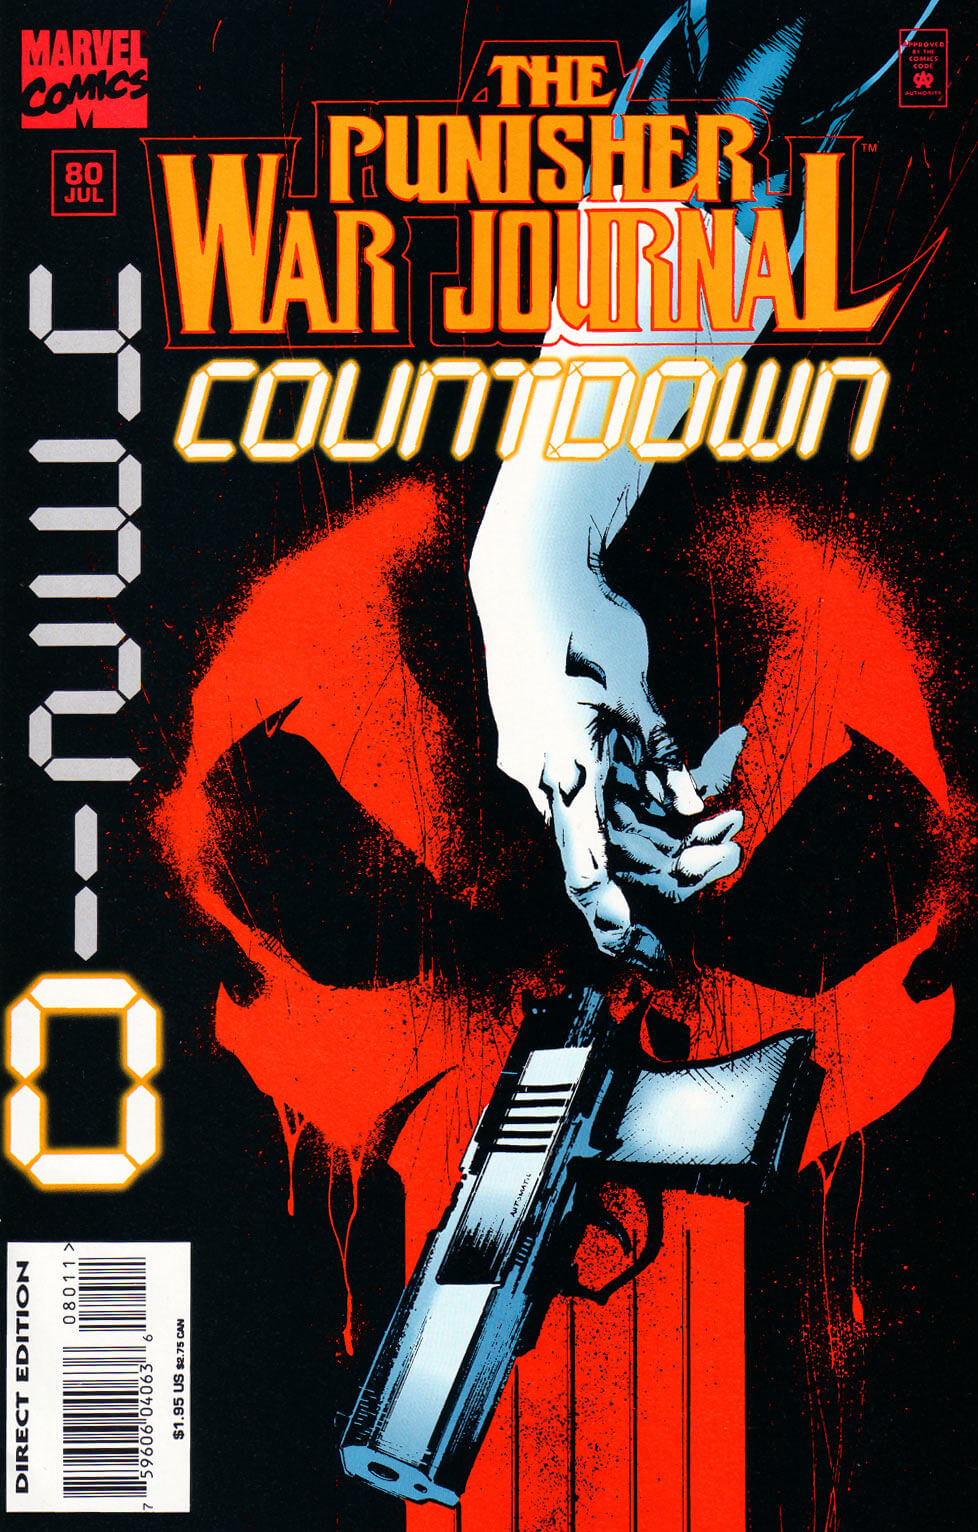 Punisher War Journal Vol 1 #80